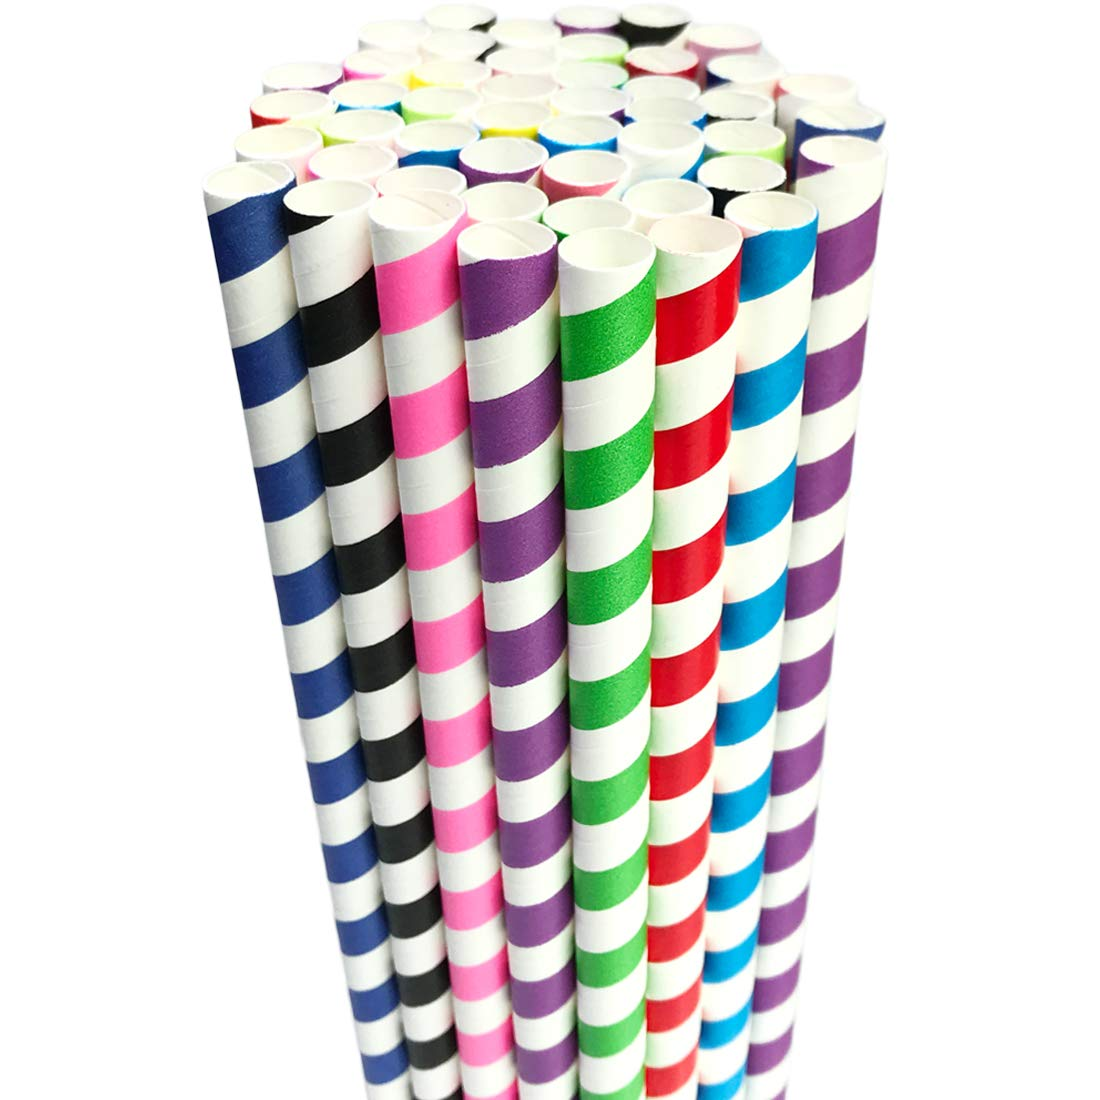 Paper Smoothie Jumbo Straws Disposable 10mm/0.4in Wide Compostable Biodegradable Bubble Tea Milkshake Drinking Straw Wrapped in Bulk Party Supplies Decorations Bpa Free Striped 70Pcs